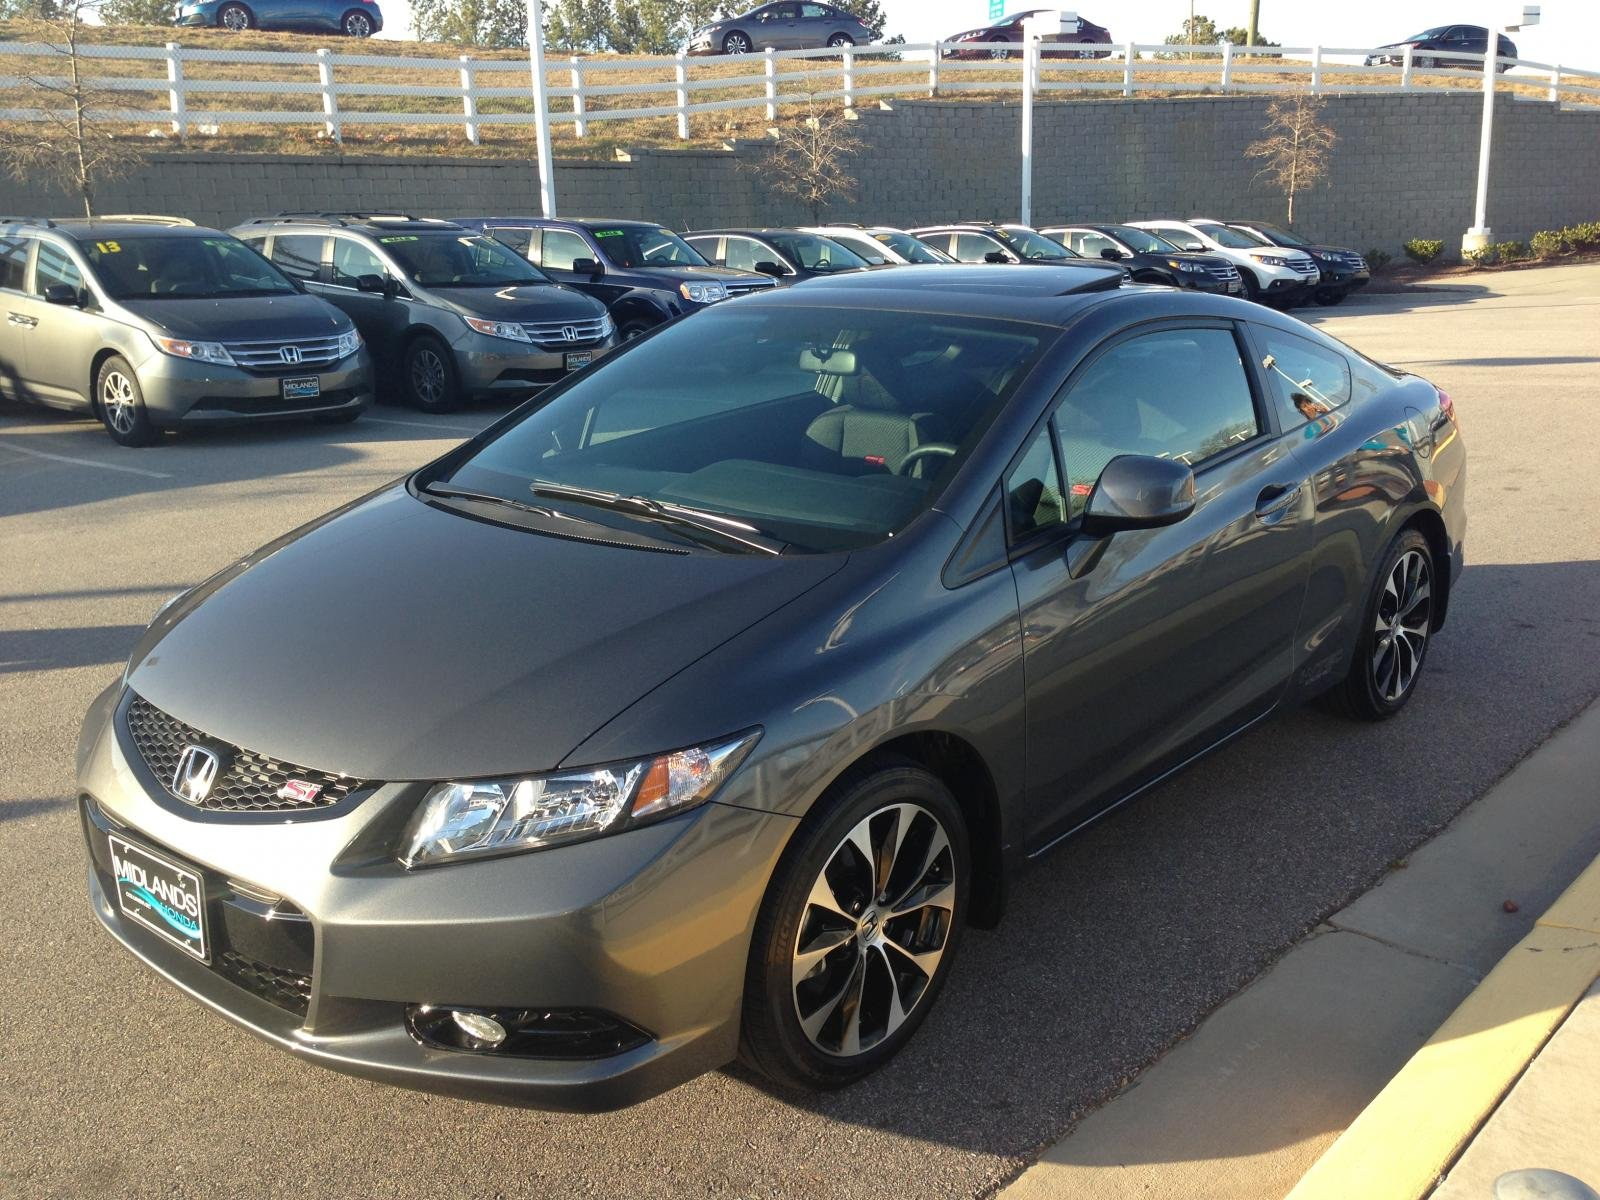 Hello! New 2013 Honda Civic Si 2Door coupe owner-2013-honda-civic-si-16-mar-2013-18-08-33.jpg